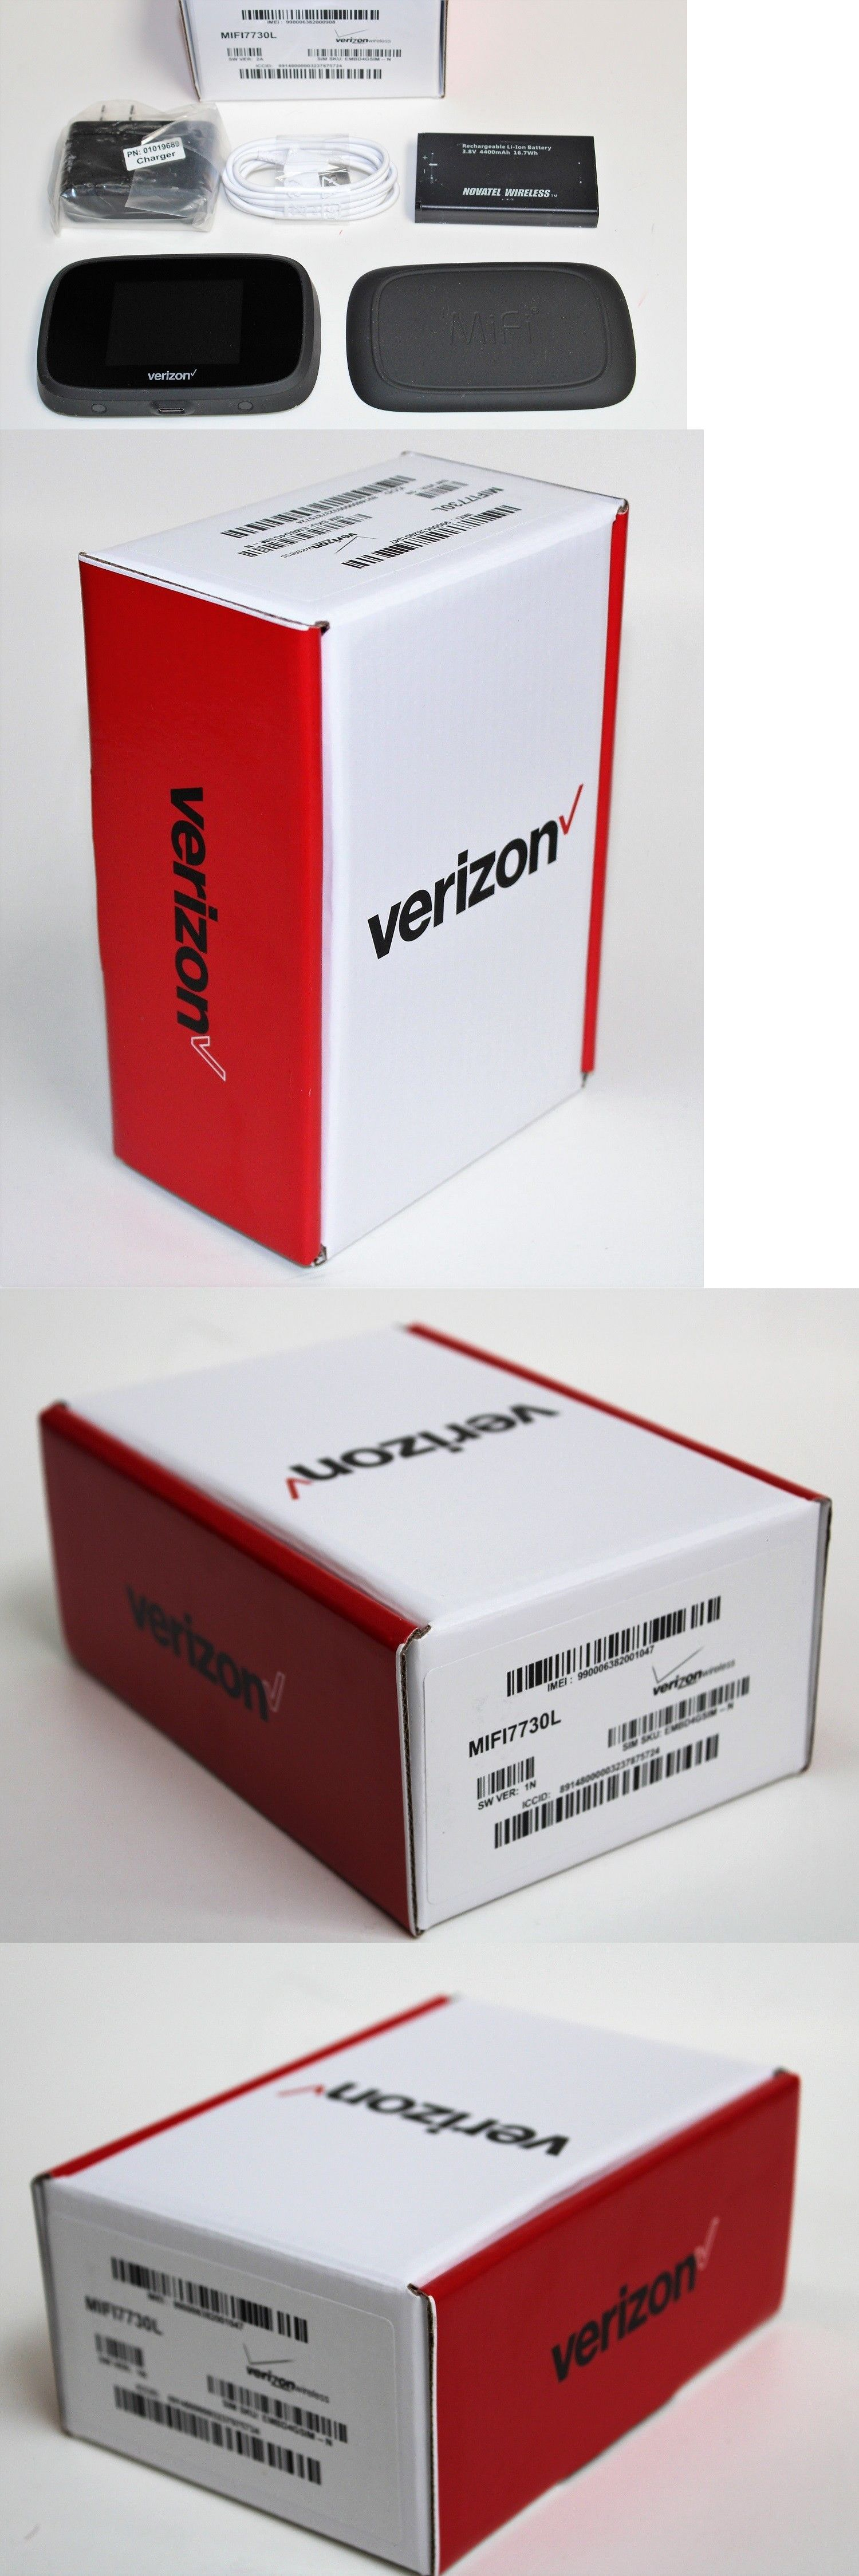 Mobile Broadband Devices 175710: Verizon Mifi 7730L Jetpack 4G Lte